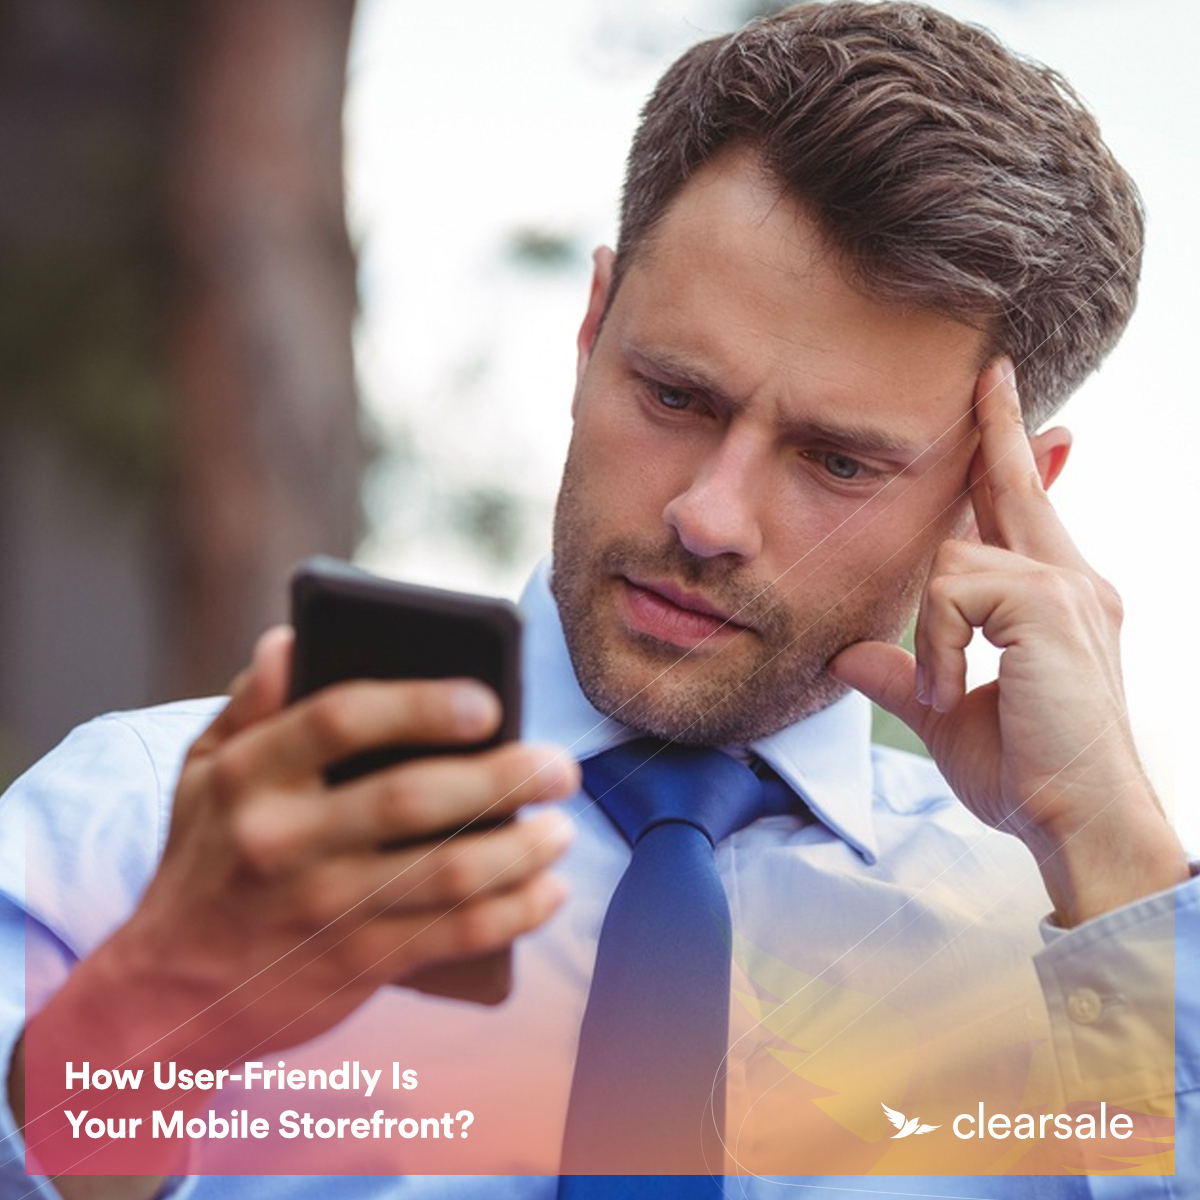 How User-Friendly Is Your Mobile Storefront?